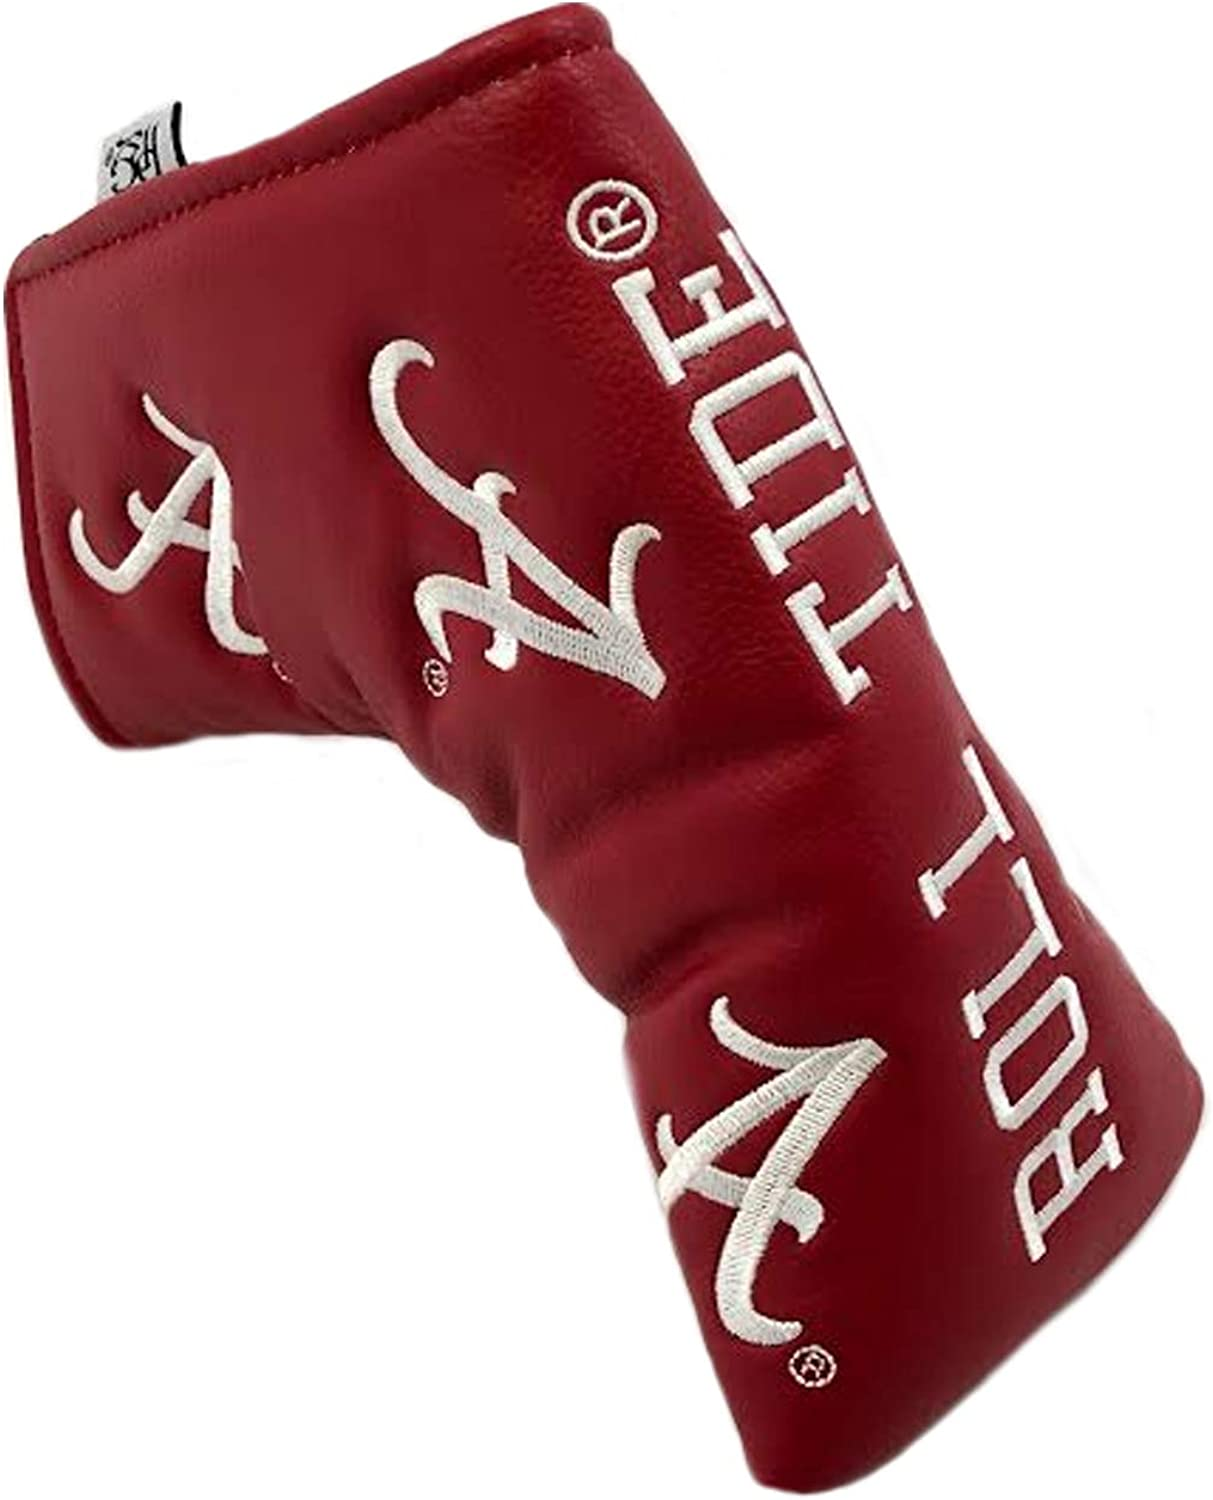 PRG Americas NCAA Alabama Crimson Tide University of AlabamaBlade Putter Cover, Deep Red, N/A